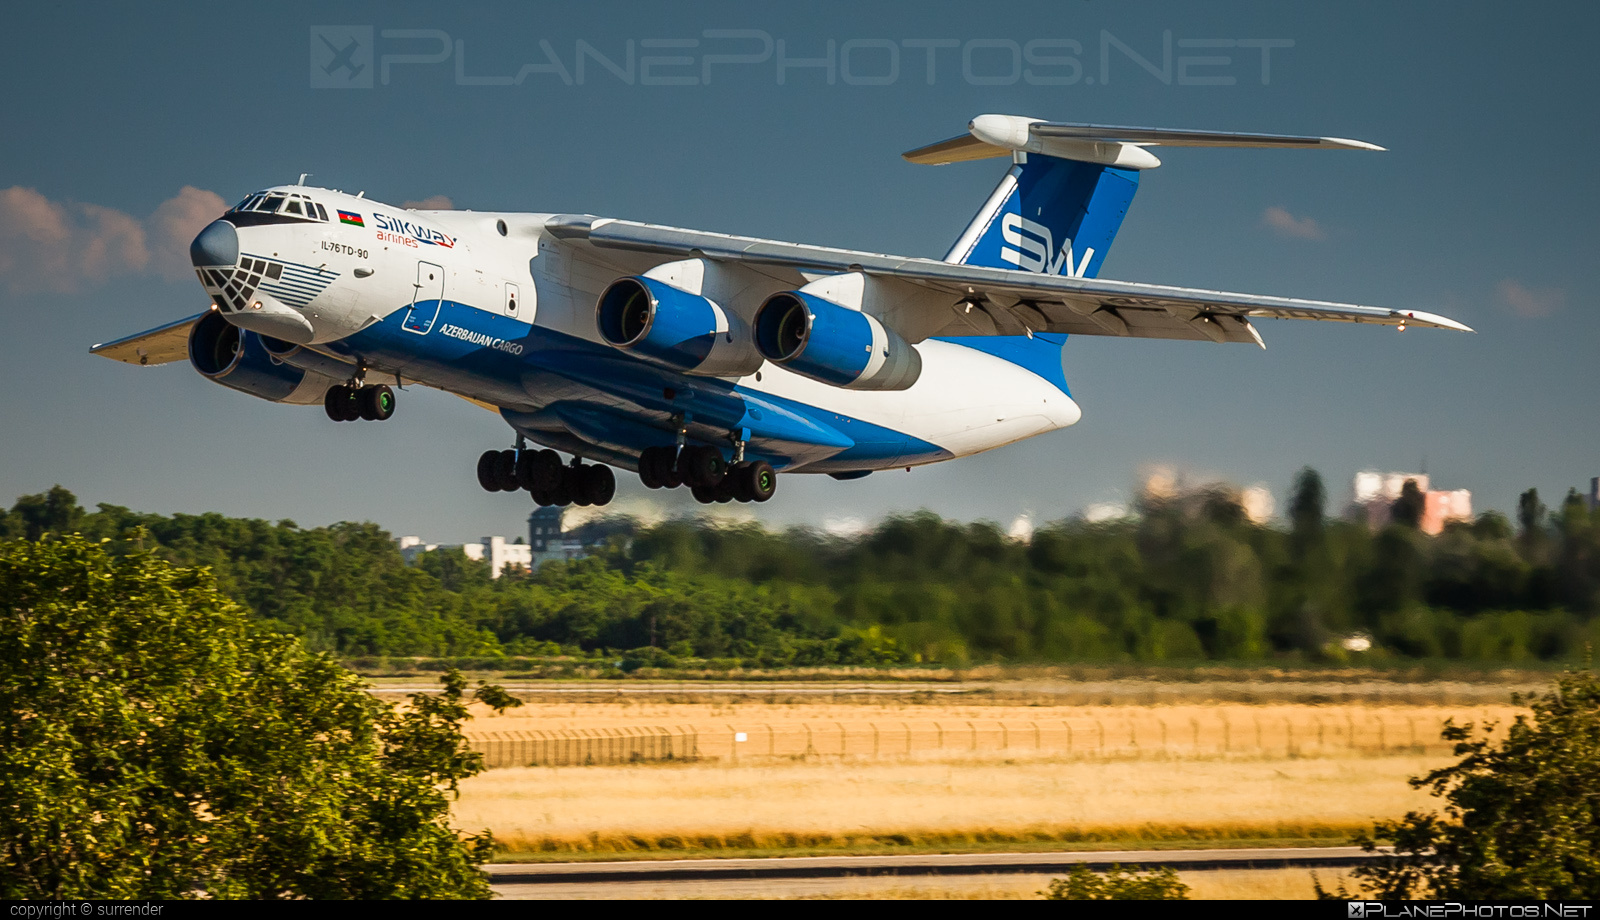 Ilyushin Il-76TD-90 - 4K-AZ100 operated by Silk Way Airlines #il76 #il76td90 #ilyushin #silkwayairlines